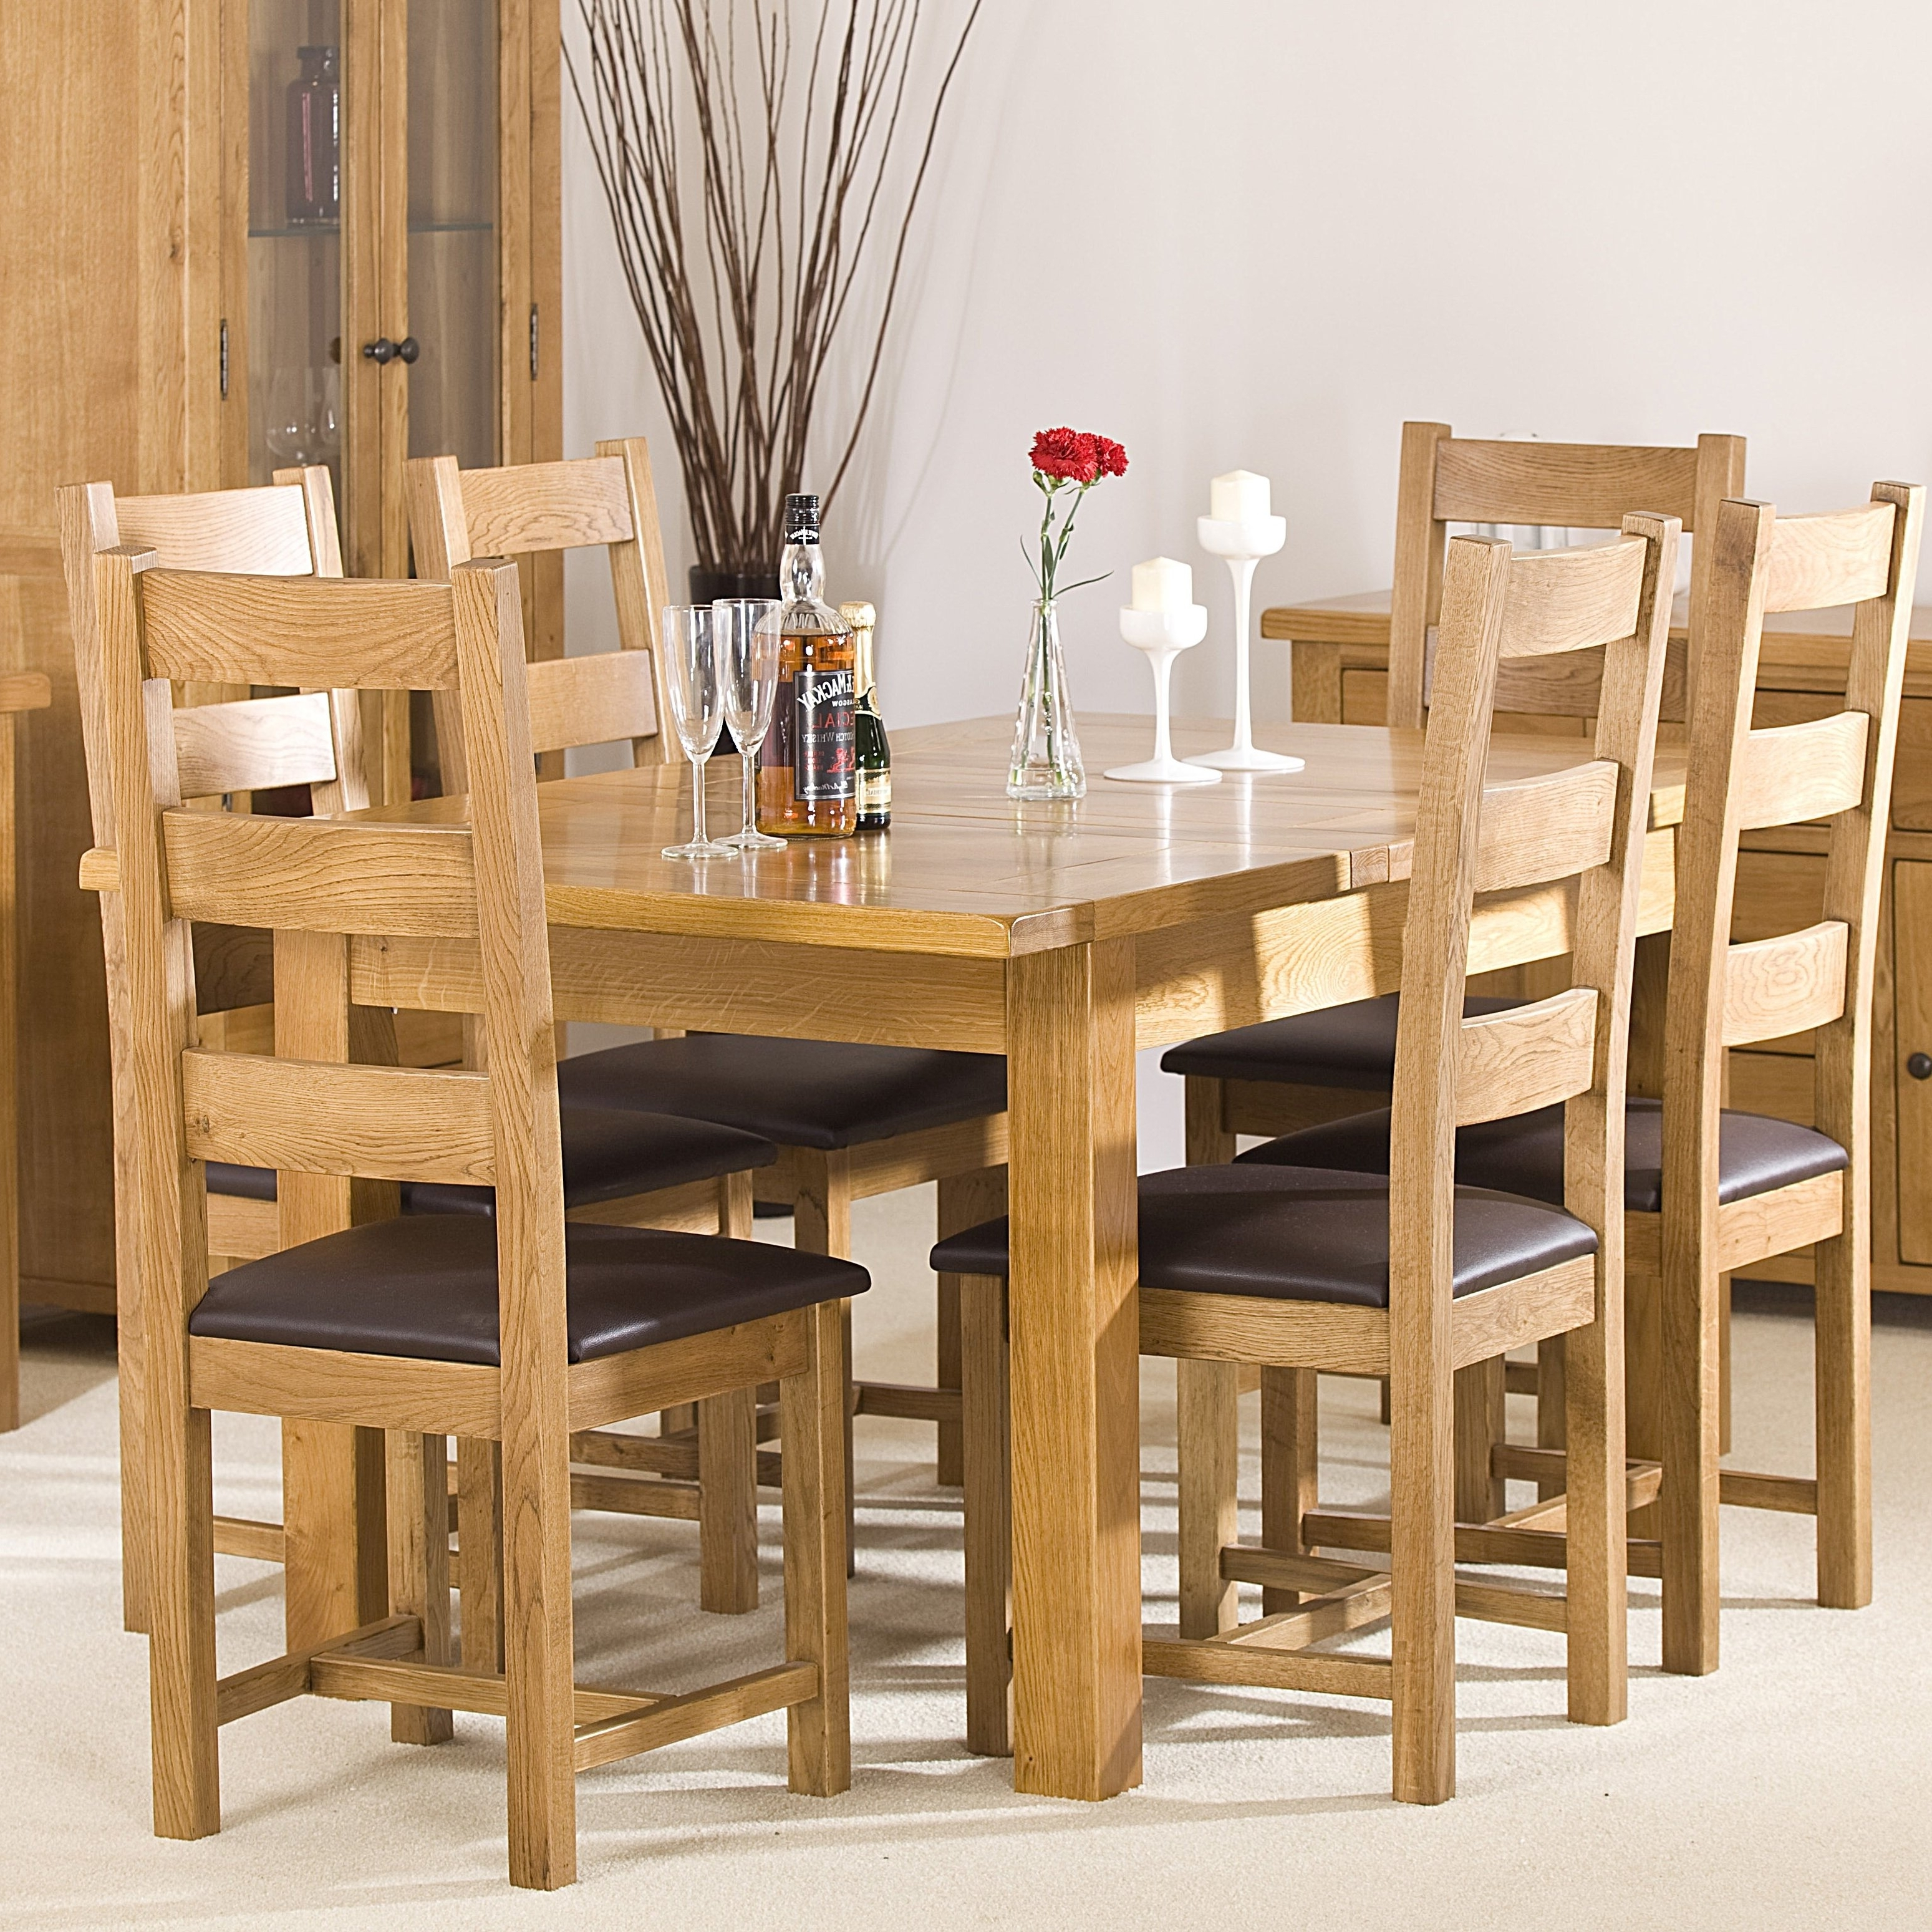 Well Known Extendable Dining Tables With 6 Chairs Inside Homestead Living Extendable Dining Table And 6 Chairs (View 25 of 25)